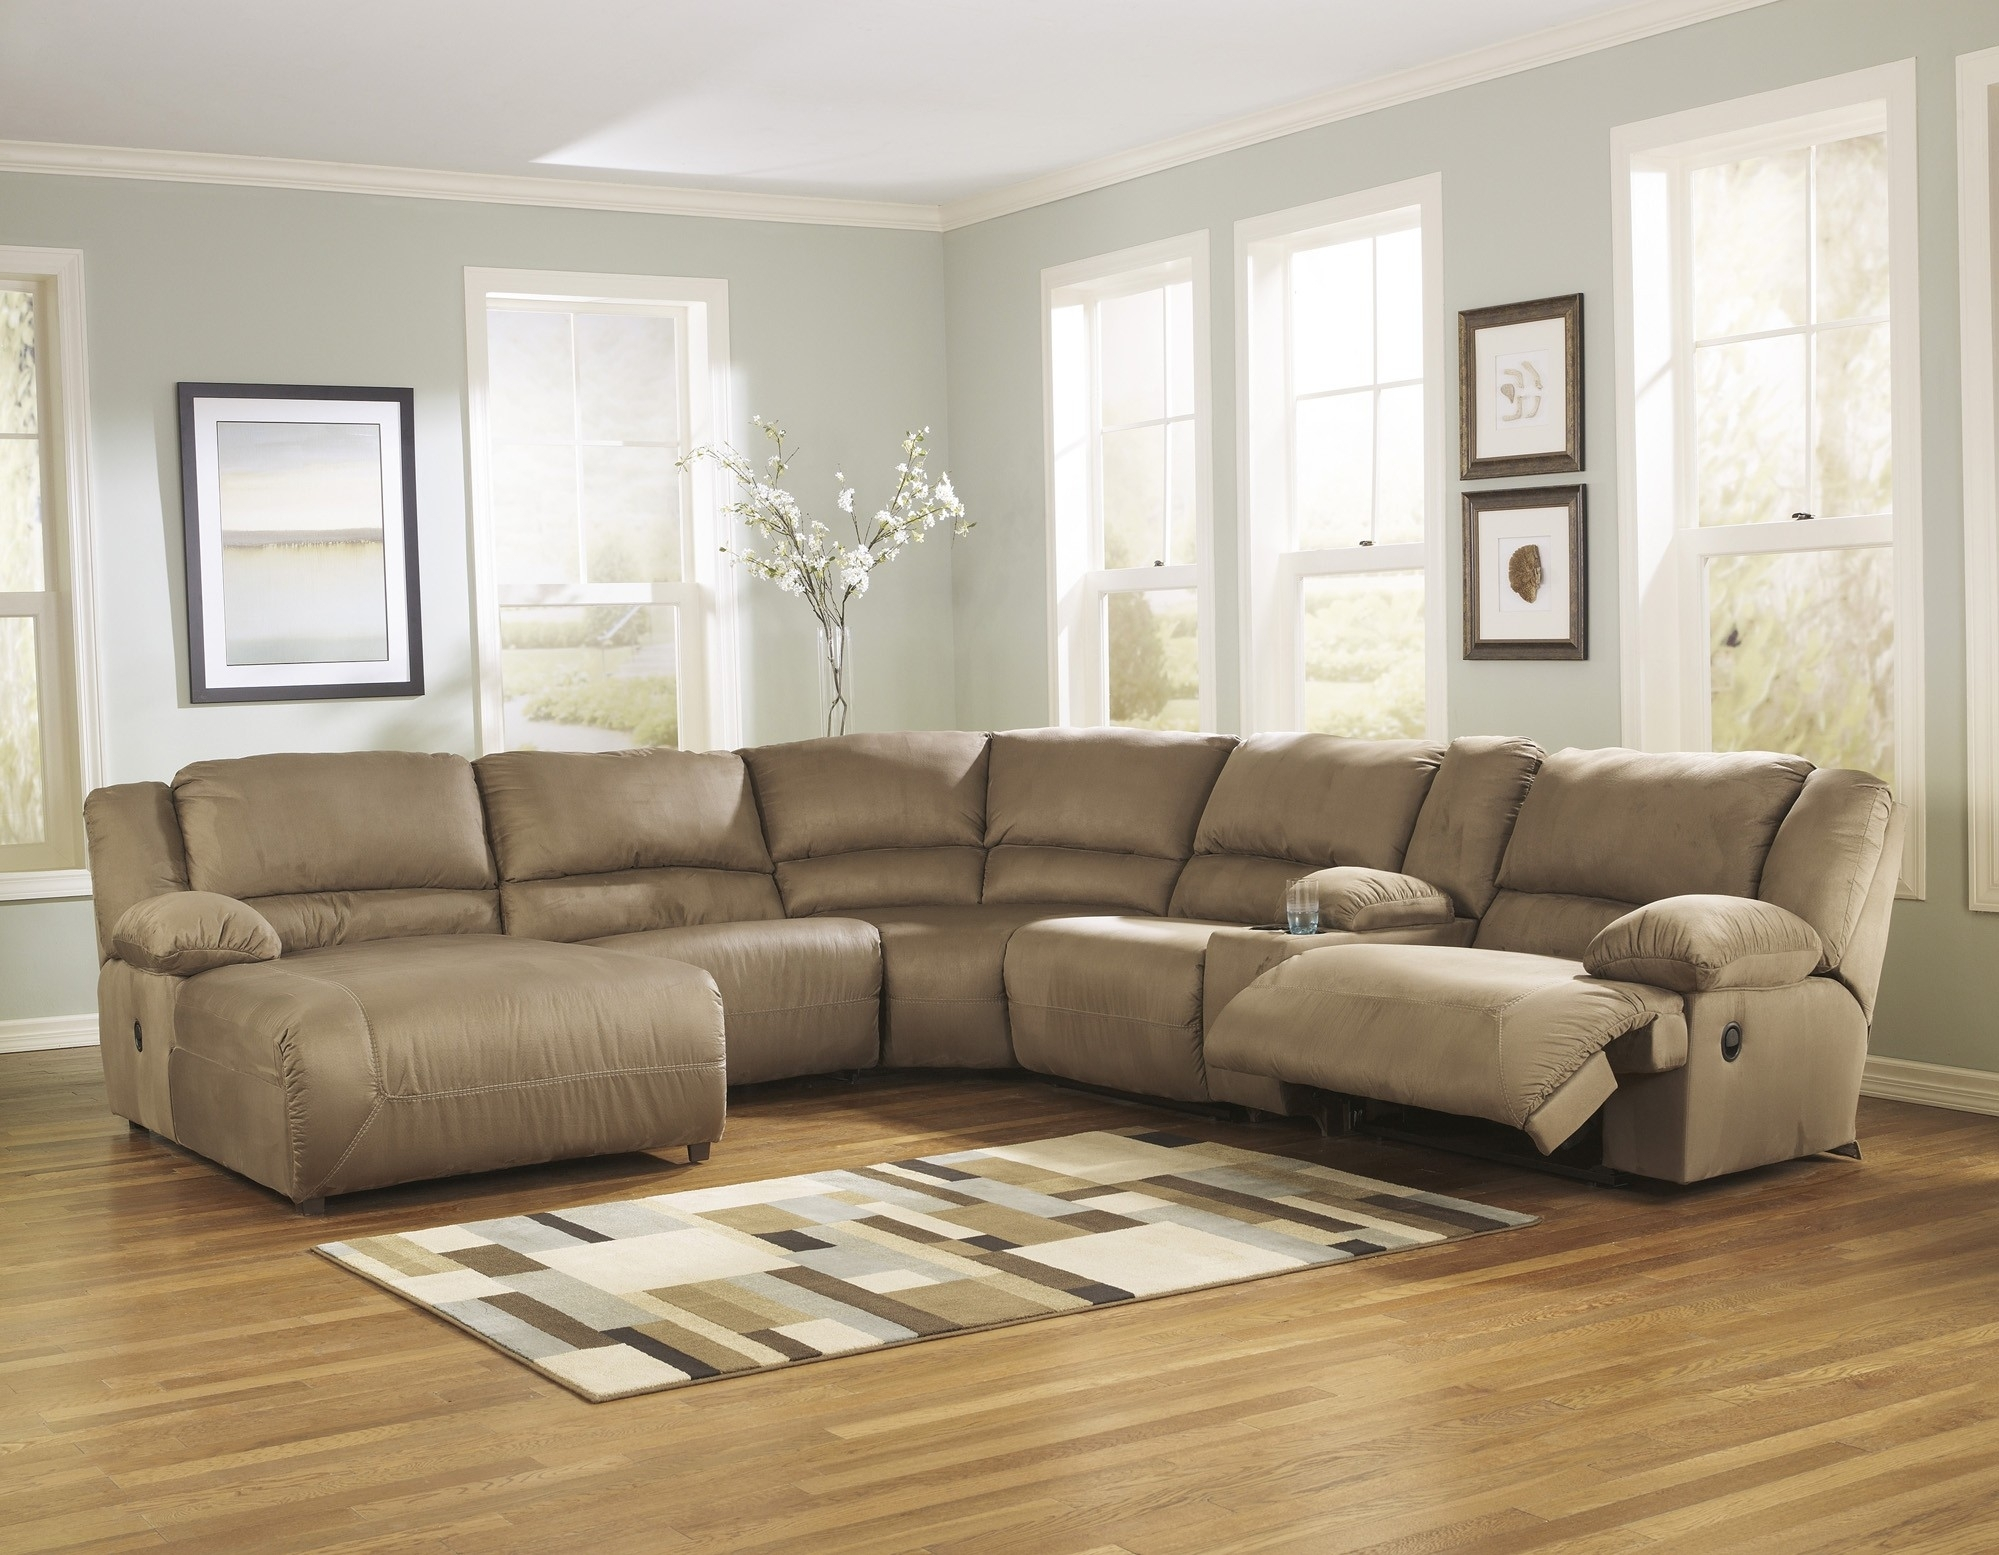 Hogan Mocha 6 Piece Sectional Sofa For $1, (View 8 of 10)